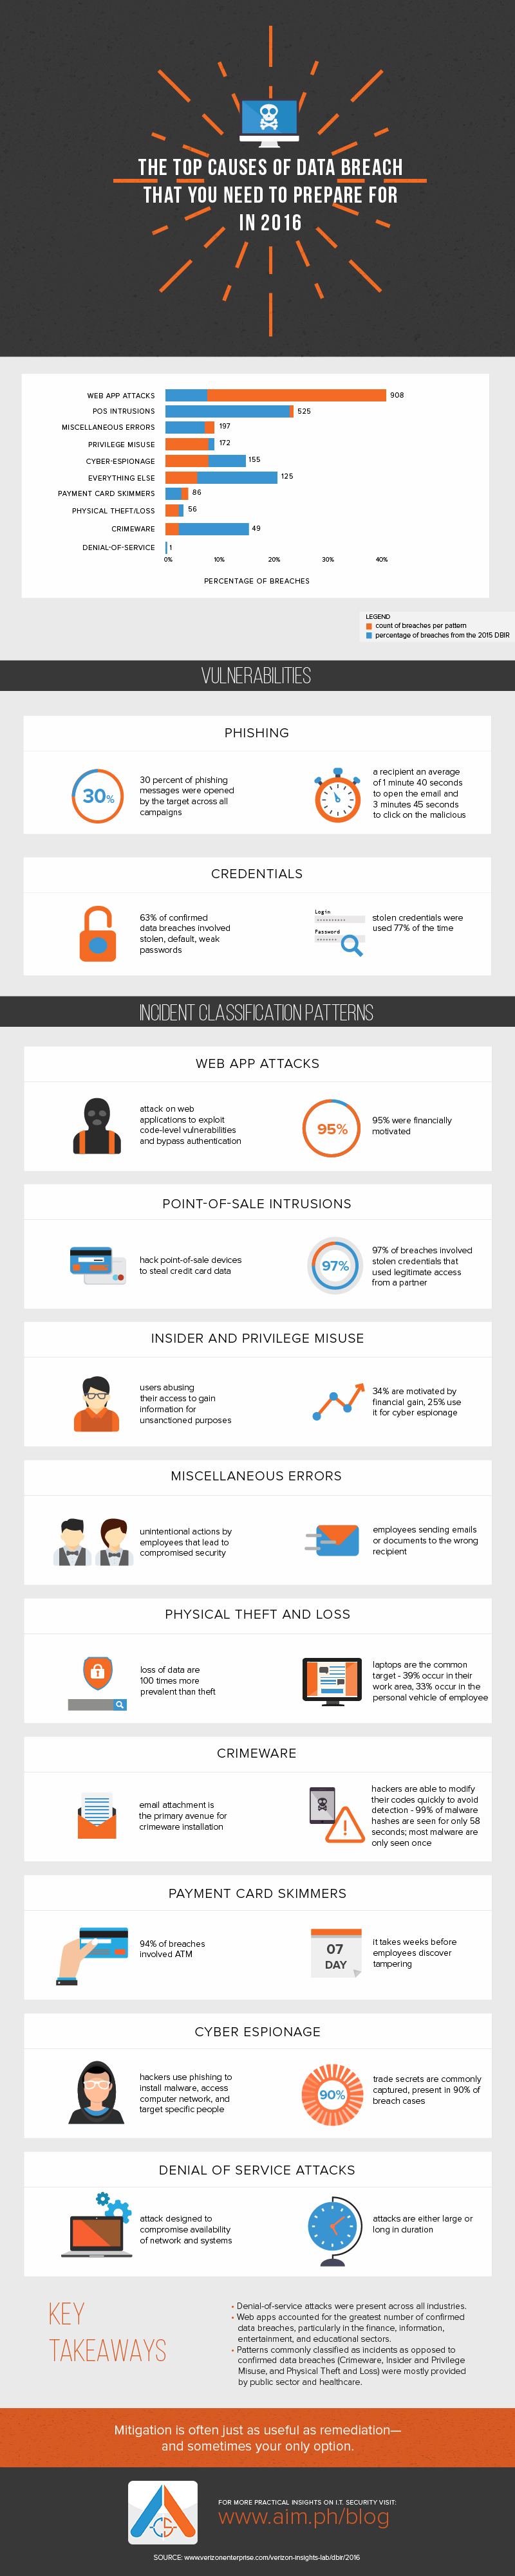 The Top Causes of Data Breach that You Need to Prepare for in 2016